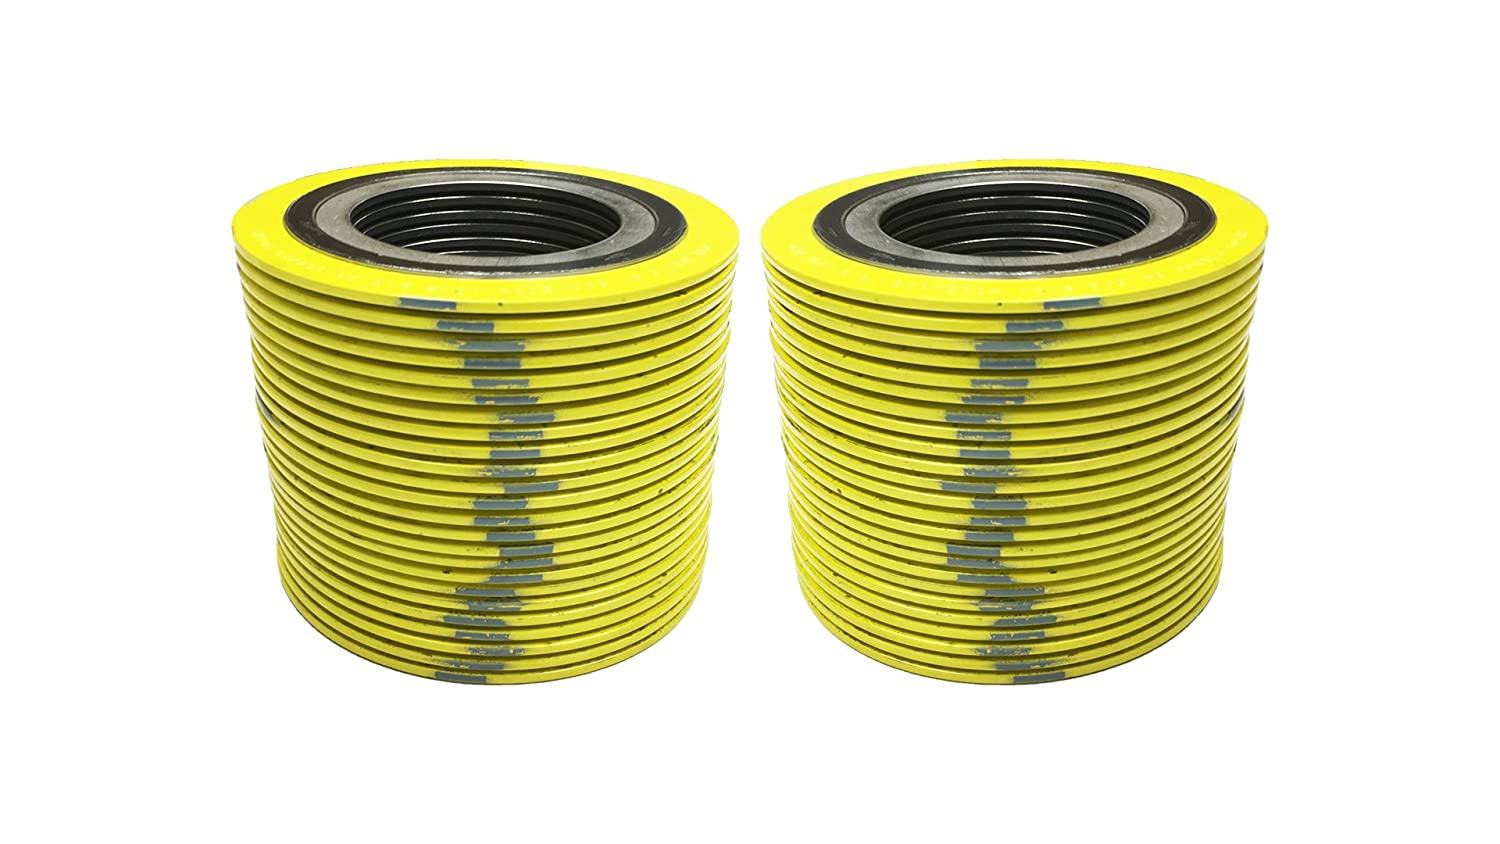 Supplied by Sur-Seal Inc of NJ Yellow with Grey Stripe Pack of 48 Sterling Seal 9000IR1304GR2500X48 304 Stainless Steel Spiral Wound Gasket with Inner Ring and Flexible Graphite Filler for 1 Pipe Pressure Class 2500#